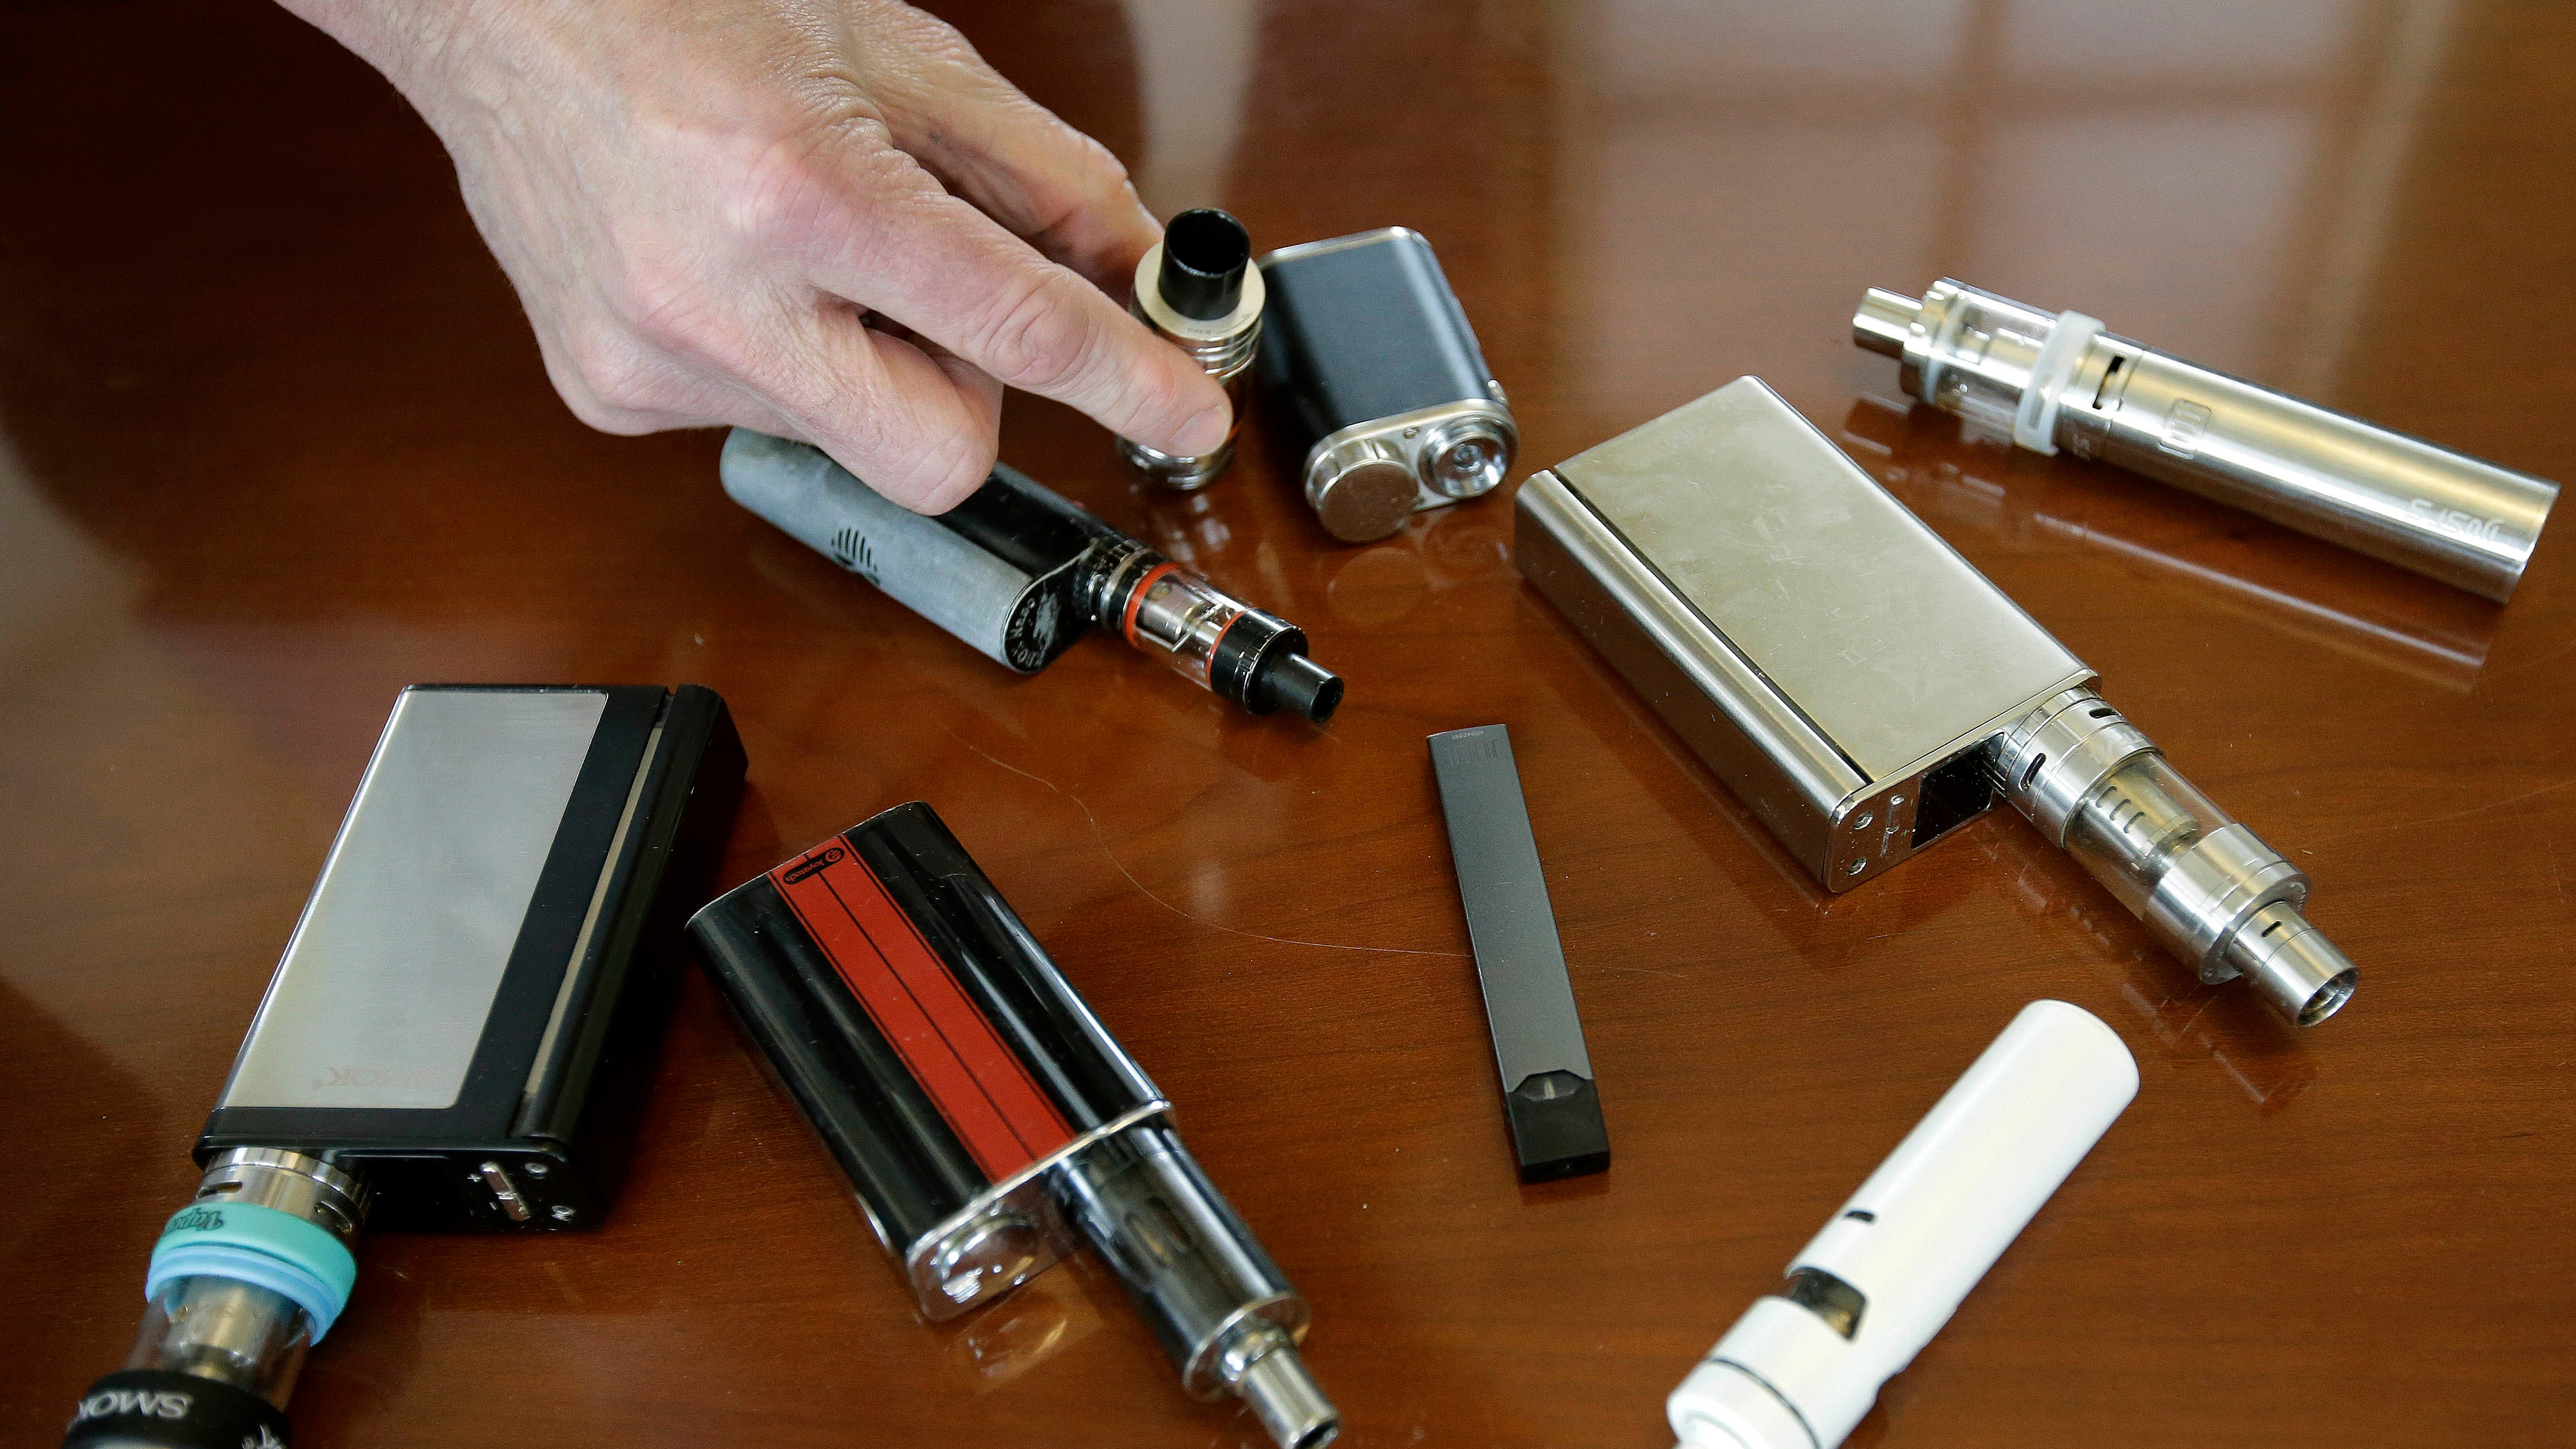 Three have died from vaping illnesses, CDC confirms | Fox